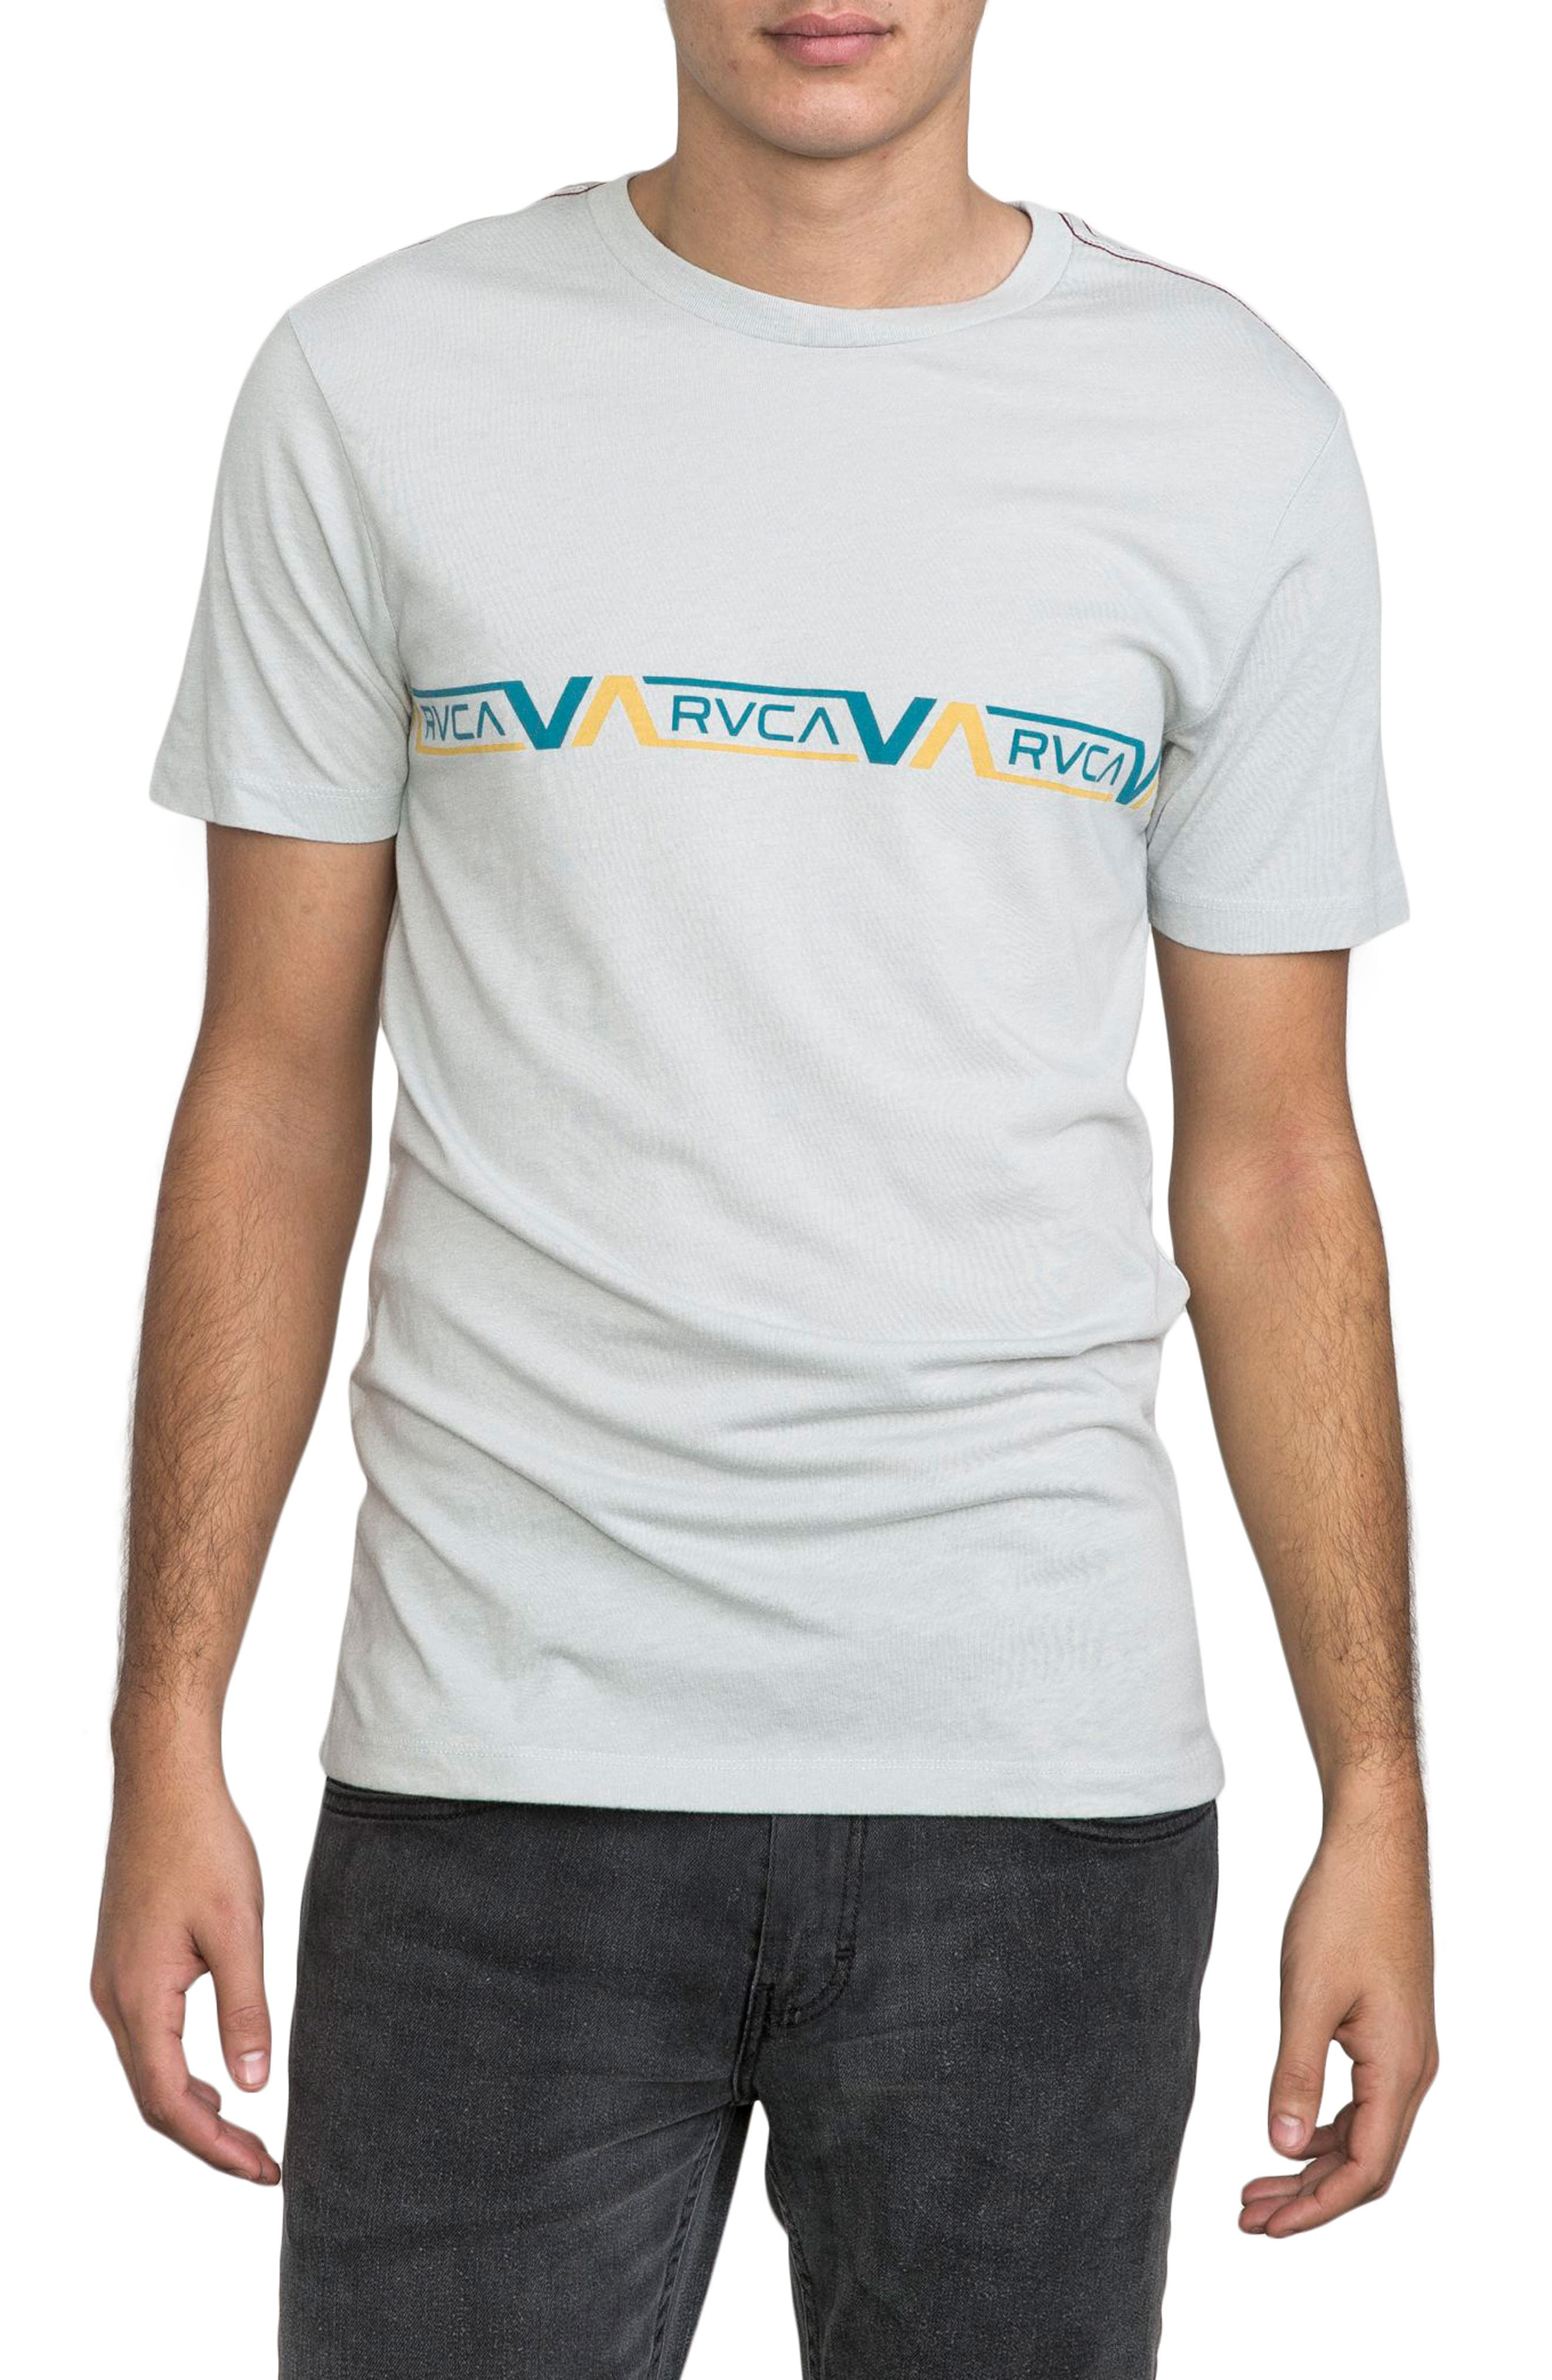 RVCA Graphic T-Shirt